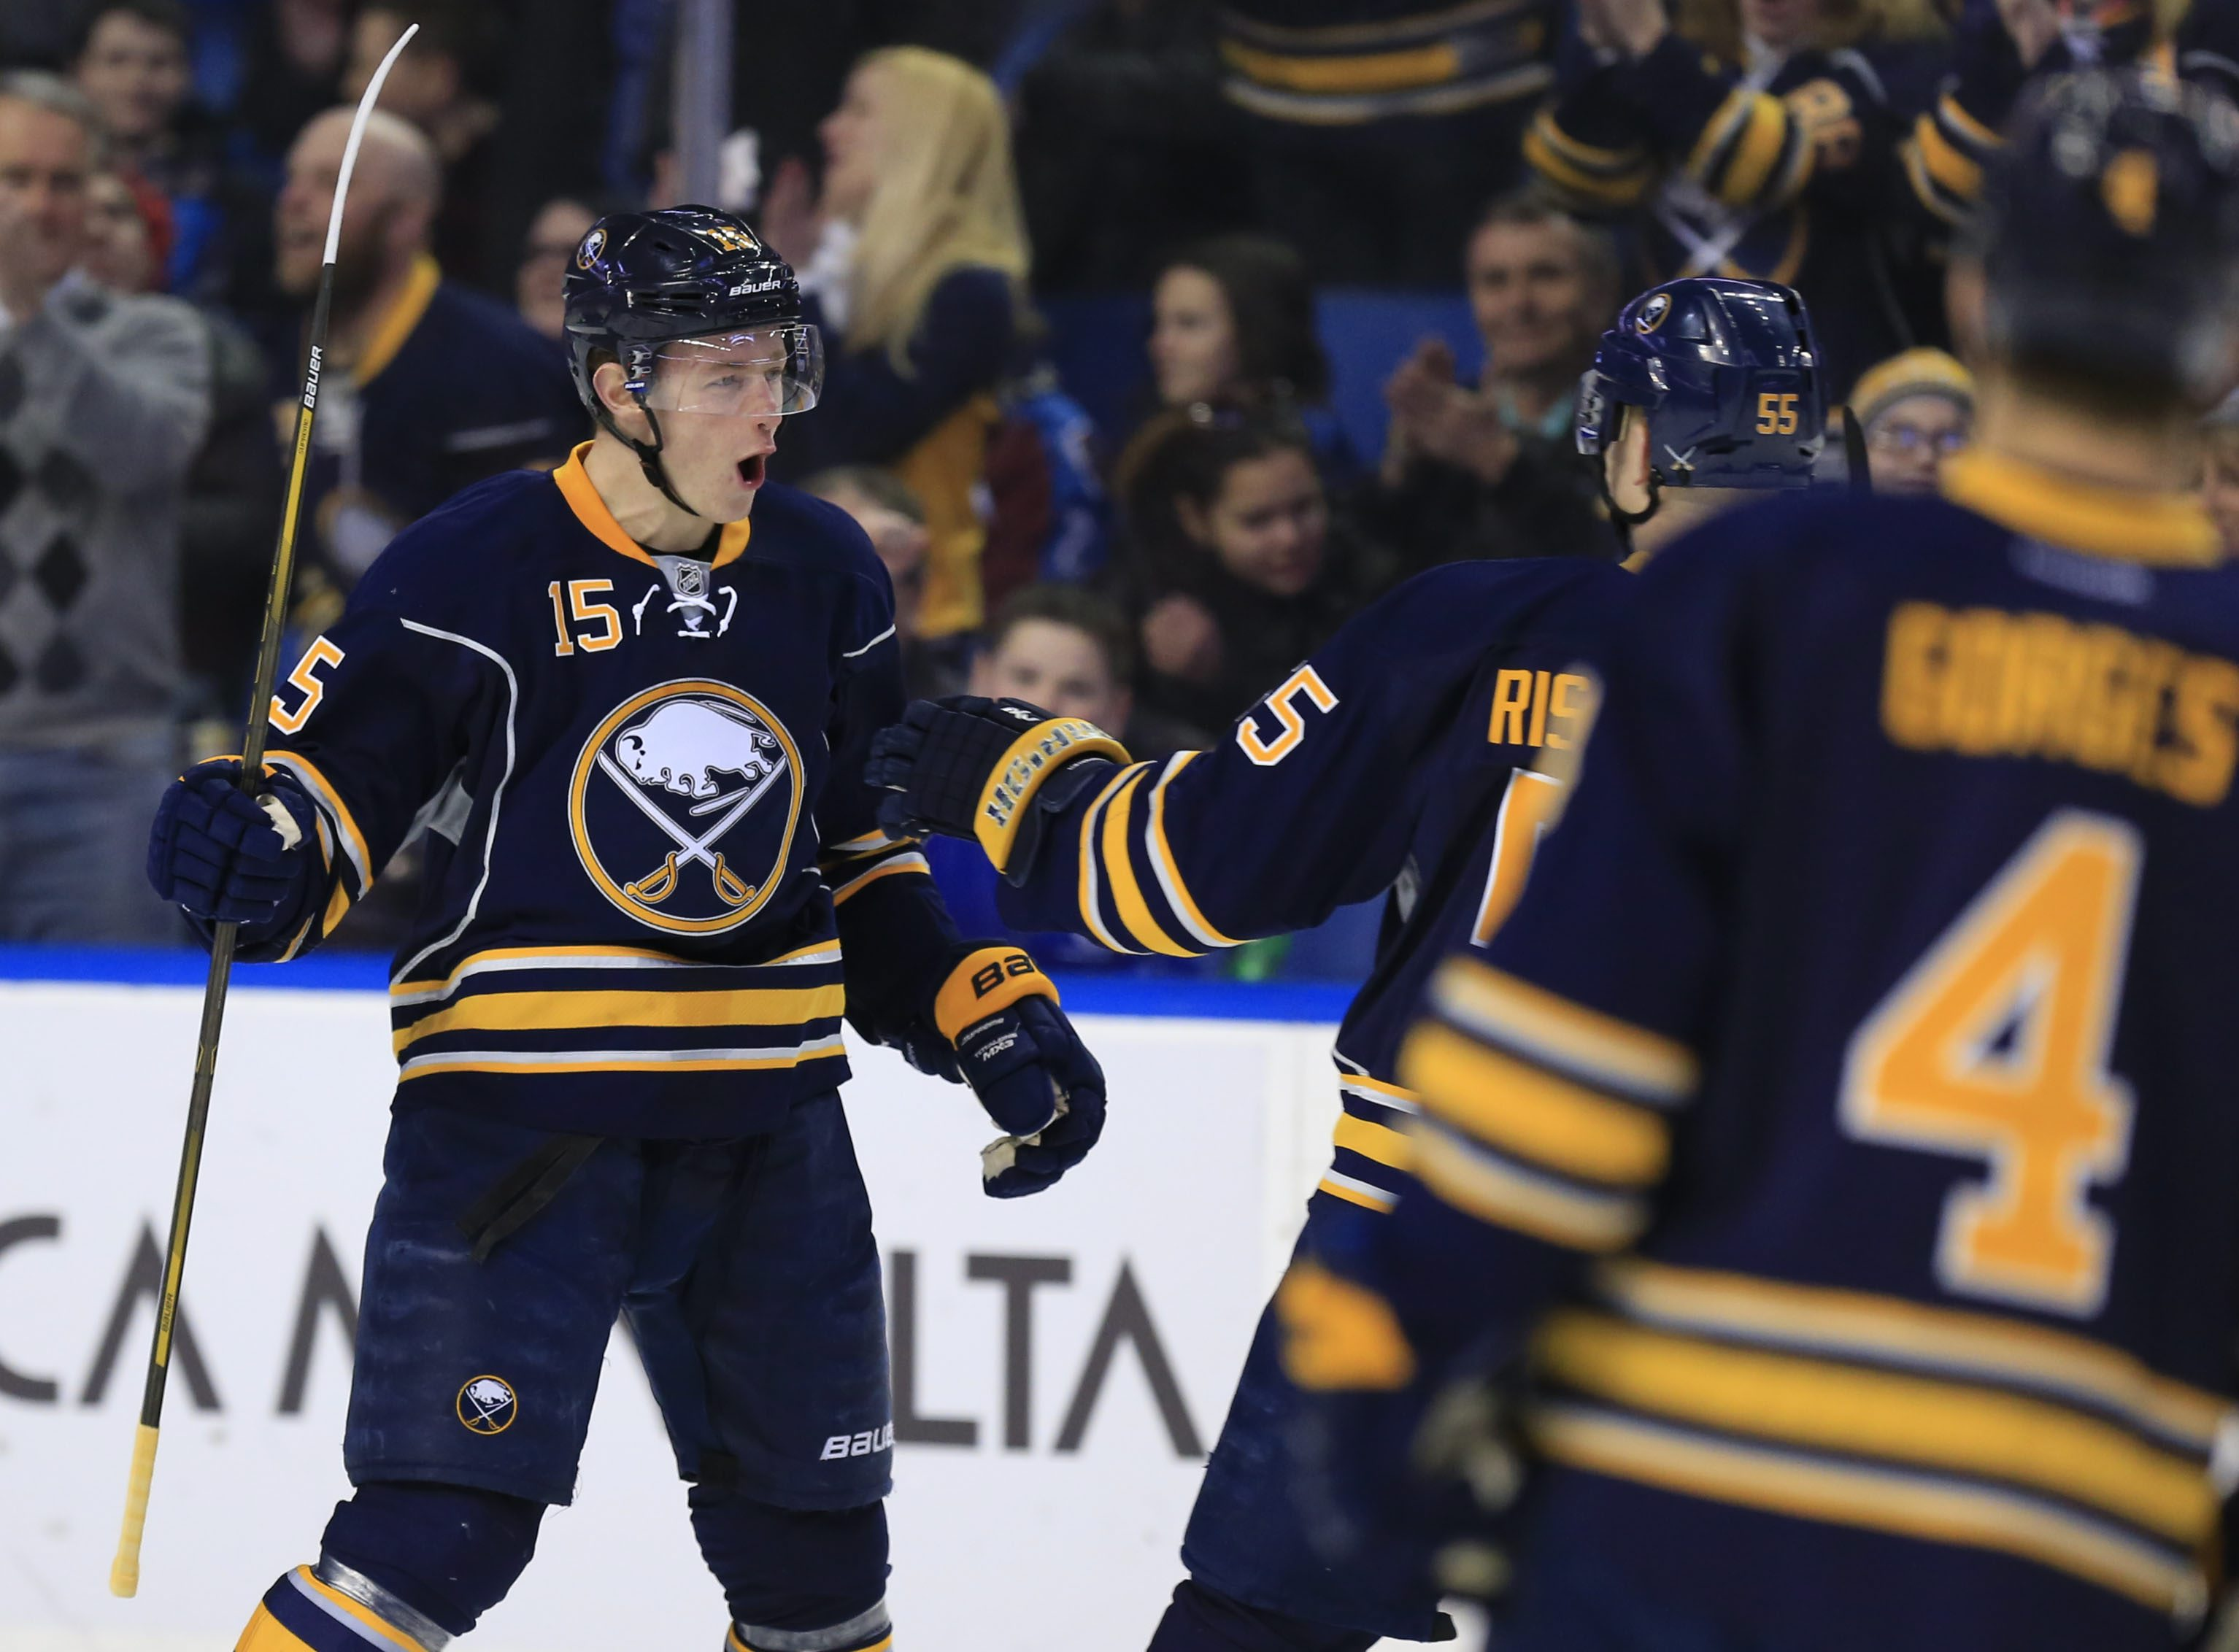 Jack Eichel is hoping for some goal celebrations tonight in his home debut this season (Harry Scull Jr./Buffalo News file photo)